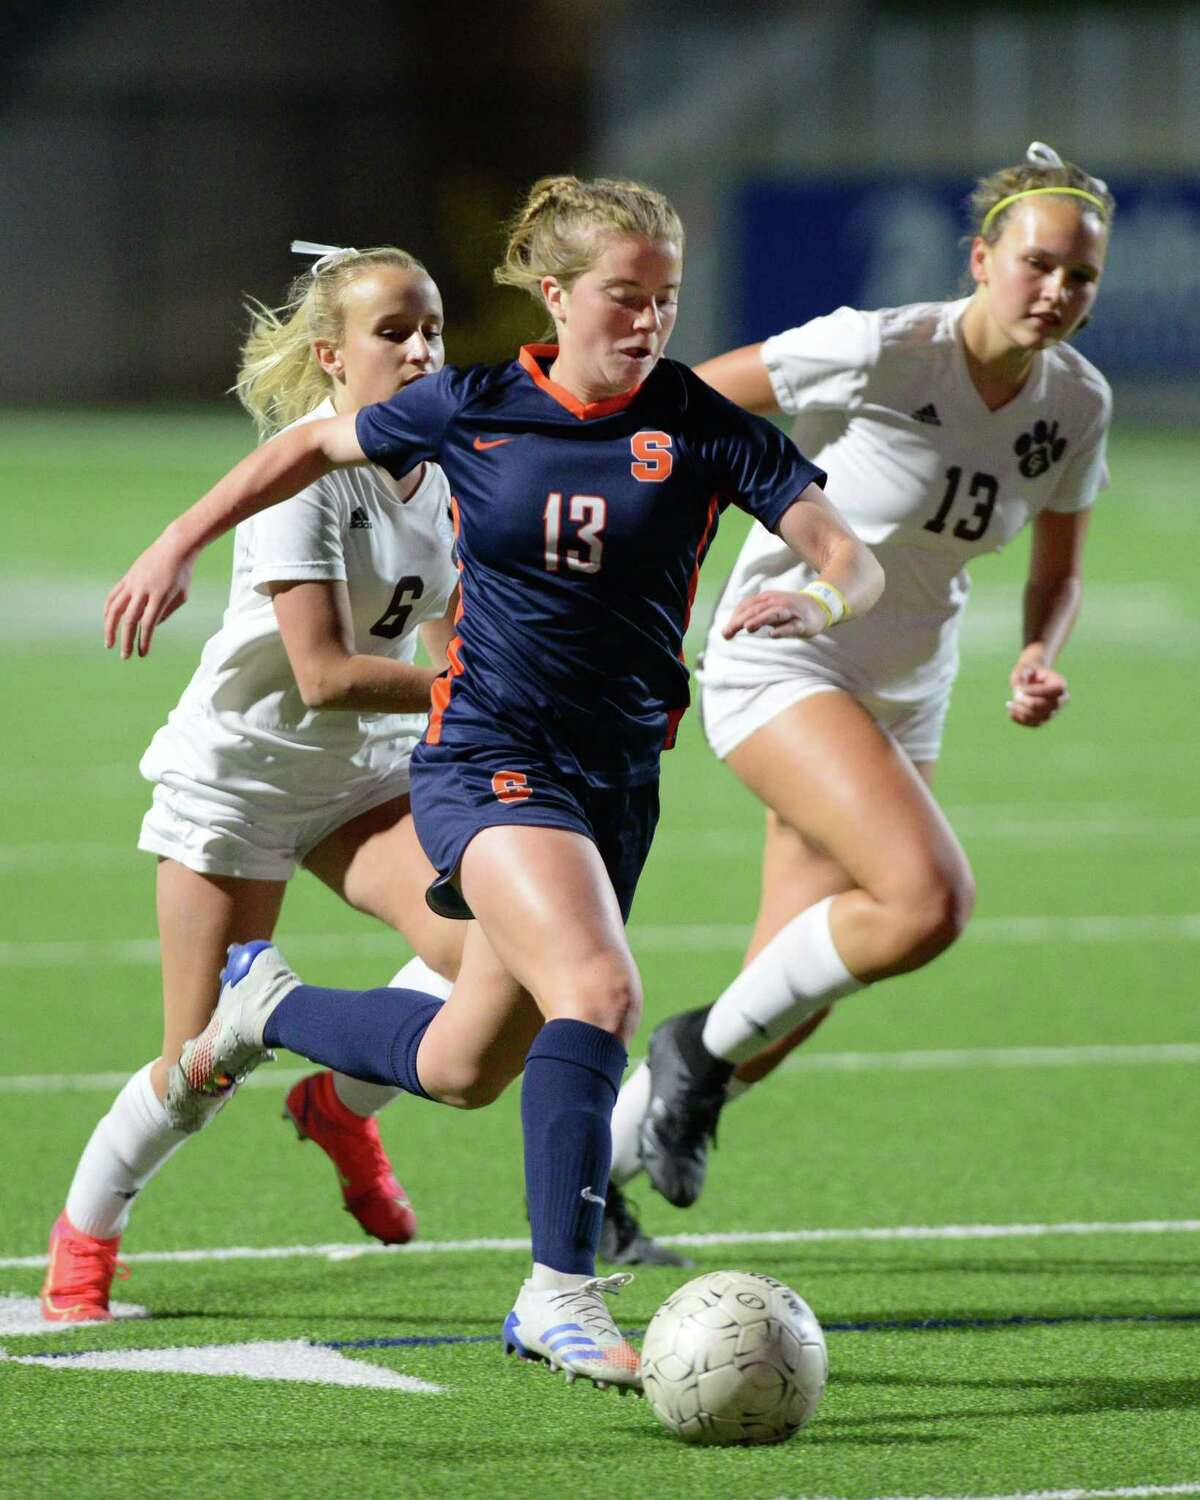 Phoebe Harpole (13) of Seven Lakes is chased by Brenley Campbell (6) and Grace Barnhart (13) of Cy-Fair during the second half of a 6A-III regional quarterfinal soccer match between the Seven Lakes Spartans and the Cy-Fair Bobcats on Friday, April 2, 2021 at Rhodes Stadium, Katy, TX.